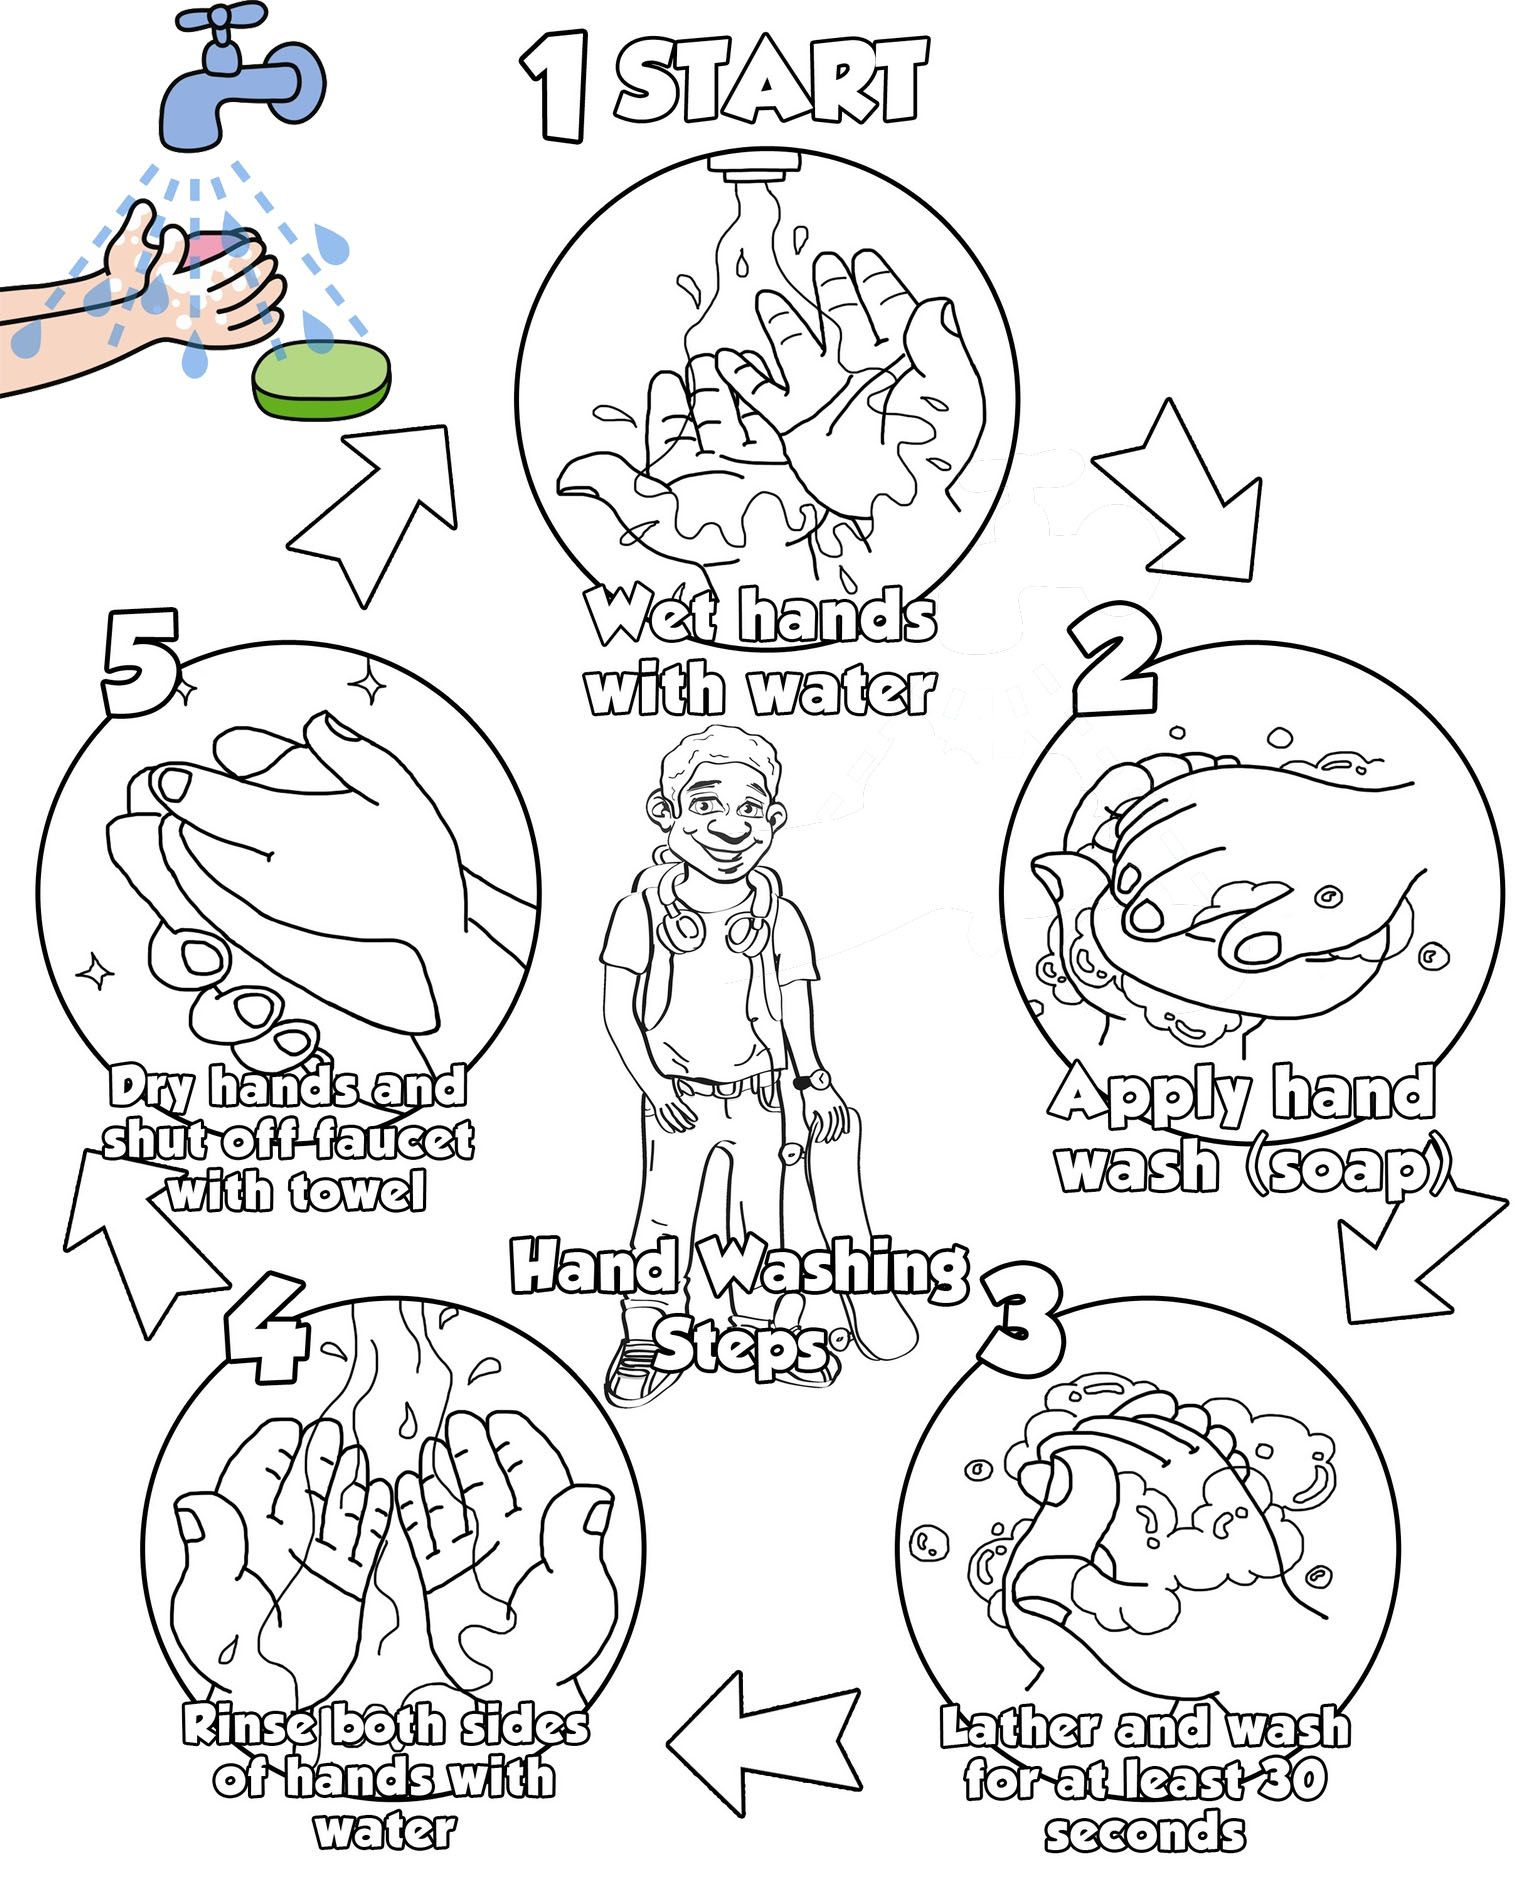 Washing Hands 5 Steps Coloring Picture Copy